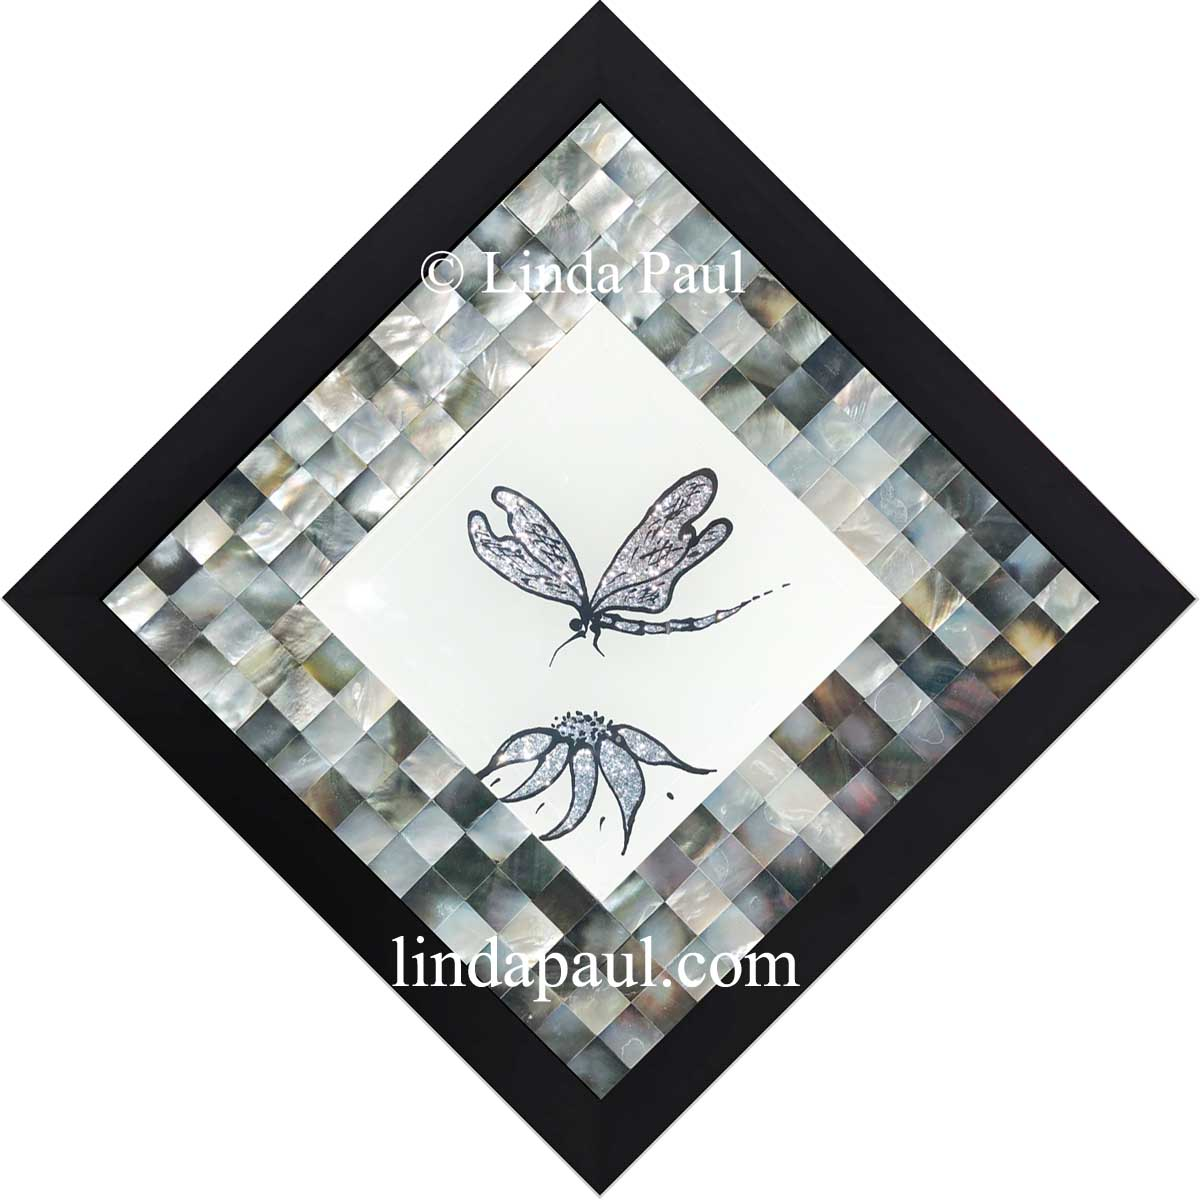 Dragonfly Art Glass Hand Painted Tiles Of Dragonflies Mosaics